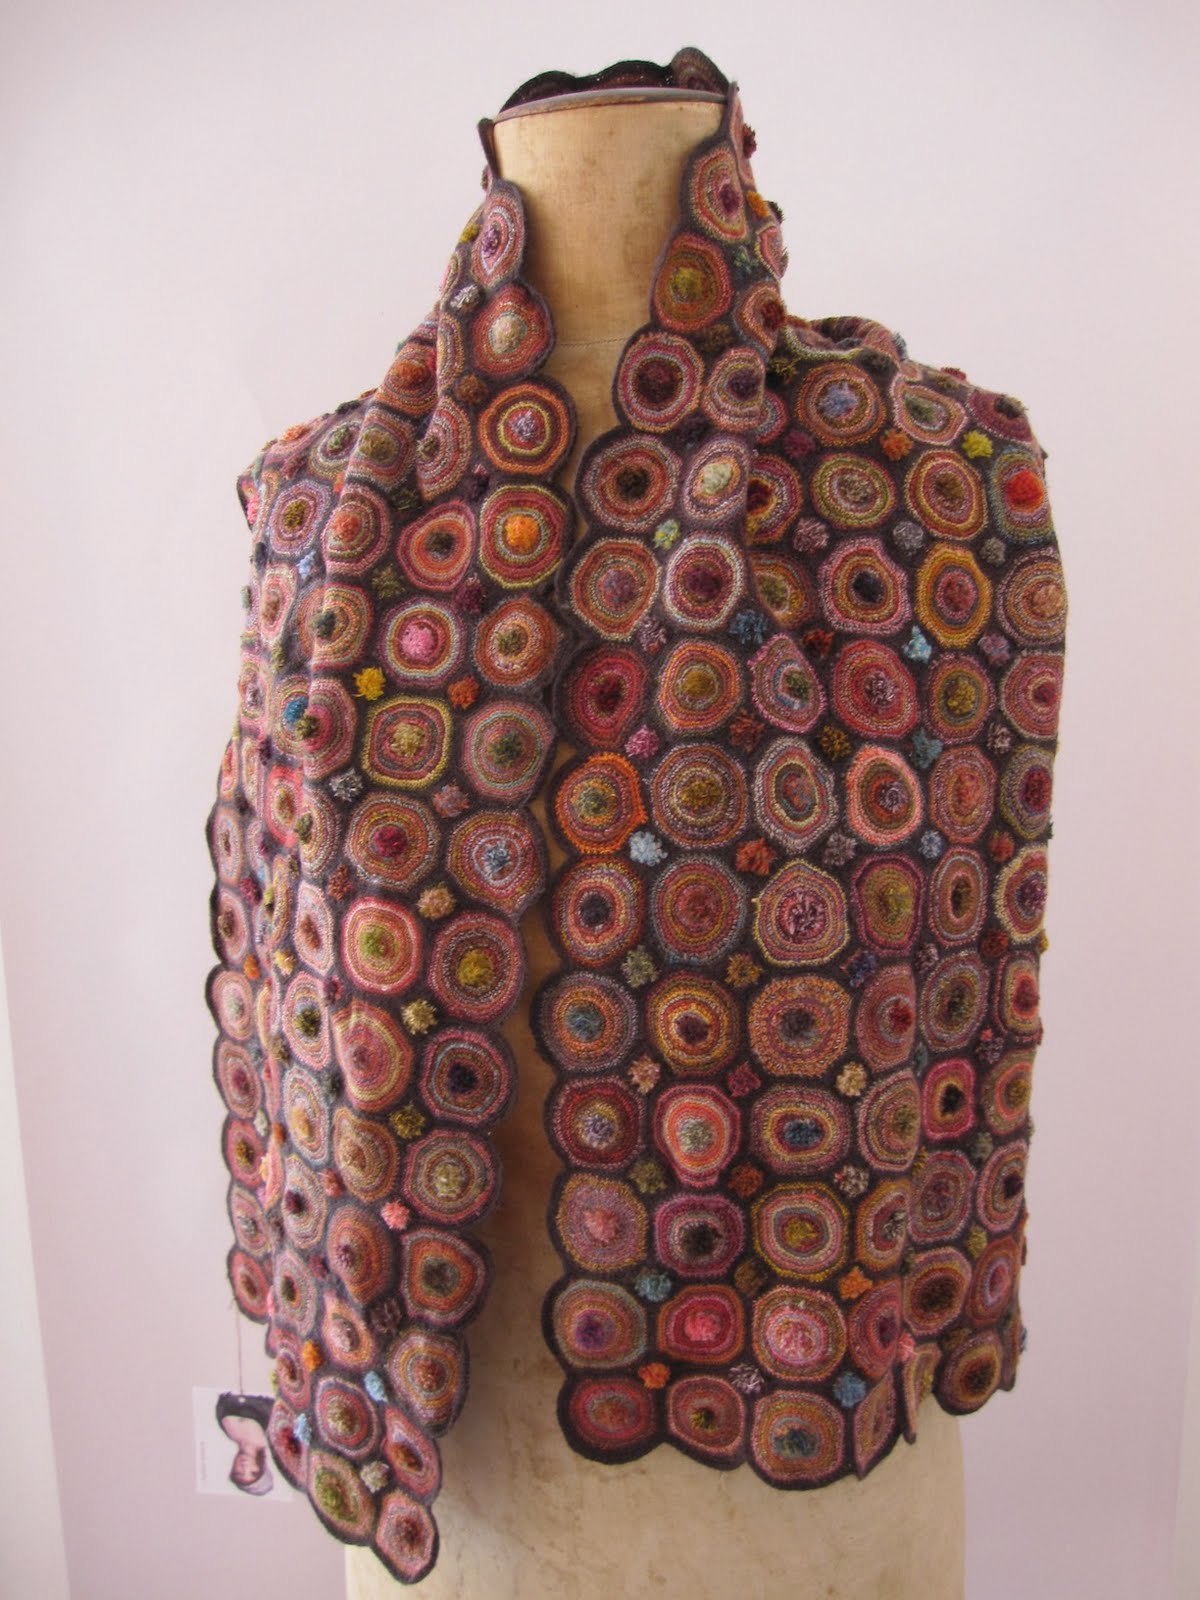 Crochet Patterns Like Sophie Digard : Onabee Blog: New Sophie Digard Scarves..